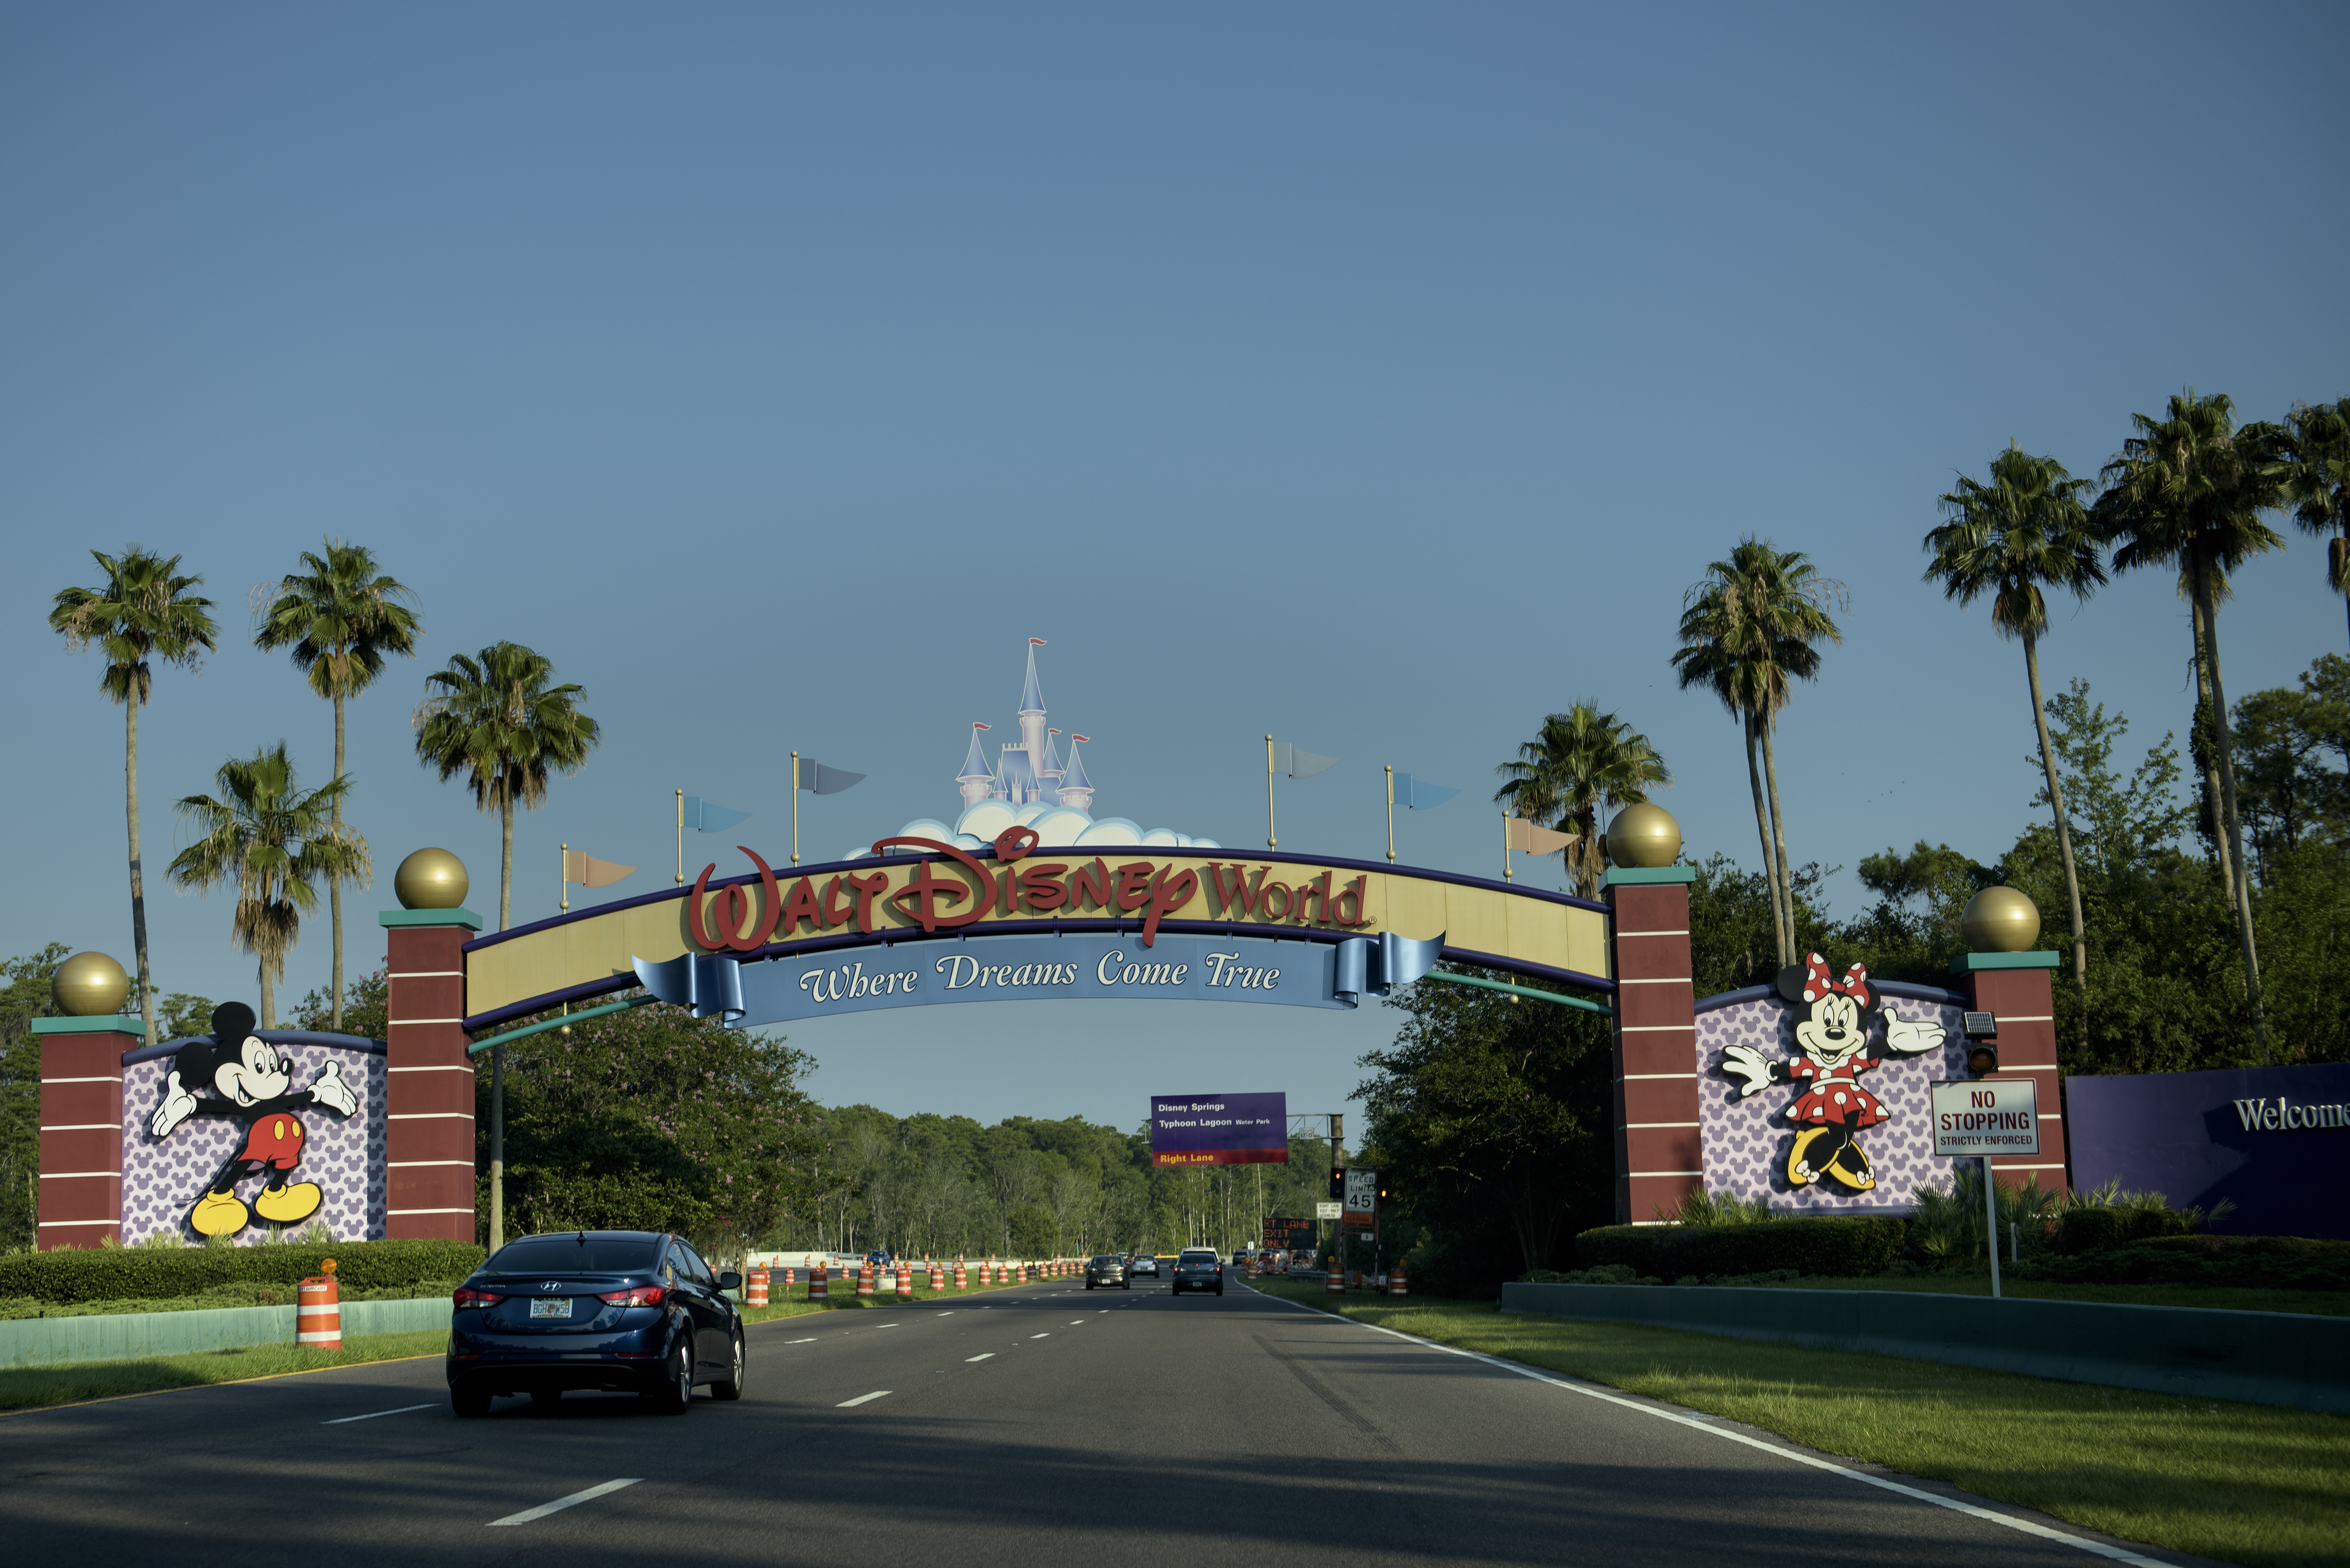 The entrance to the Walt Disney World theme park is seen June 15, 2016 in Orlando, Florida where a two-year-old boy was attacked by an alligator at the Seven Seas Lagoon by the Grand Floridian hotel. An American family's Disney vacation turned into a nightmare when an alligator snatched a two-year-old boy at the shore of a resort lake and fought off the father's frantic attempts to wrest the toddler from its mouth, officials said Wednesday. A search and rescue operation was launched after the attack Tuesday night at the Grand Floridian hotel not far from the Magic Kingdom was ongoing, but police said they held out little hope the boy would be found alive.  / AFP PHOTO / Brendan Smialowski